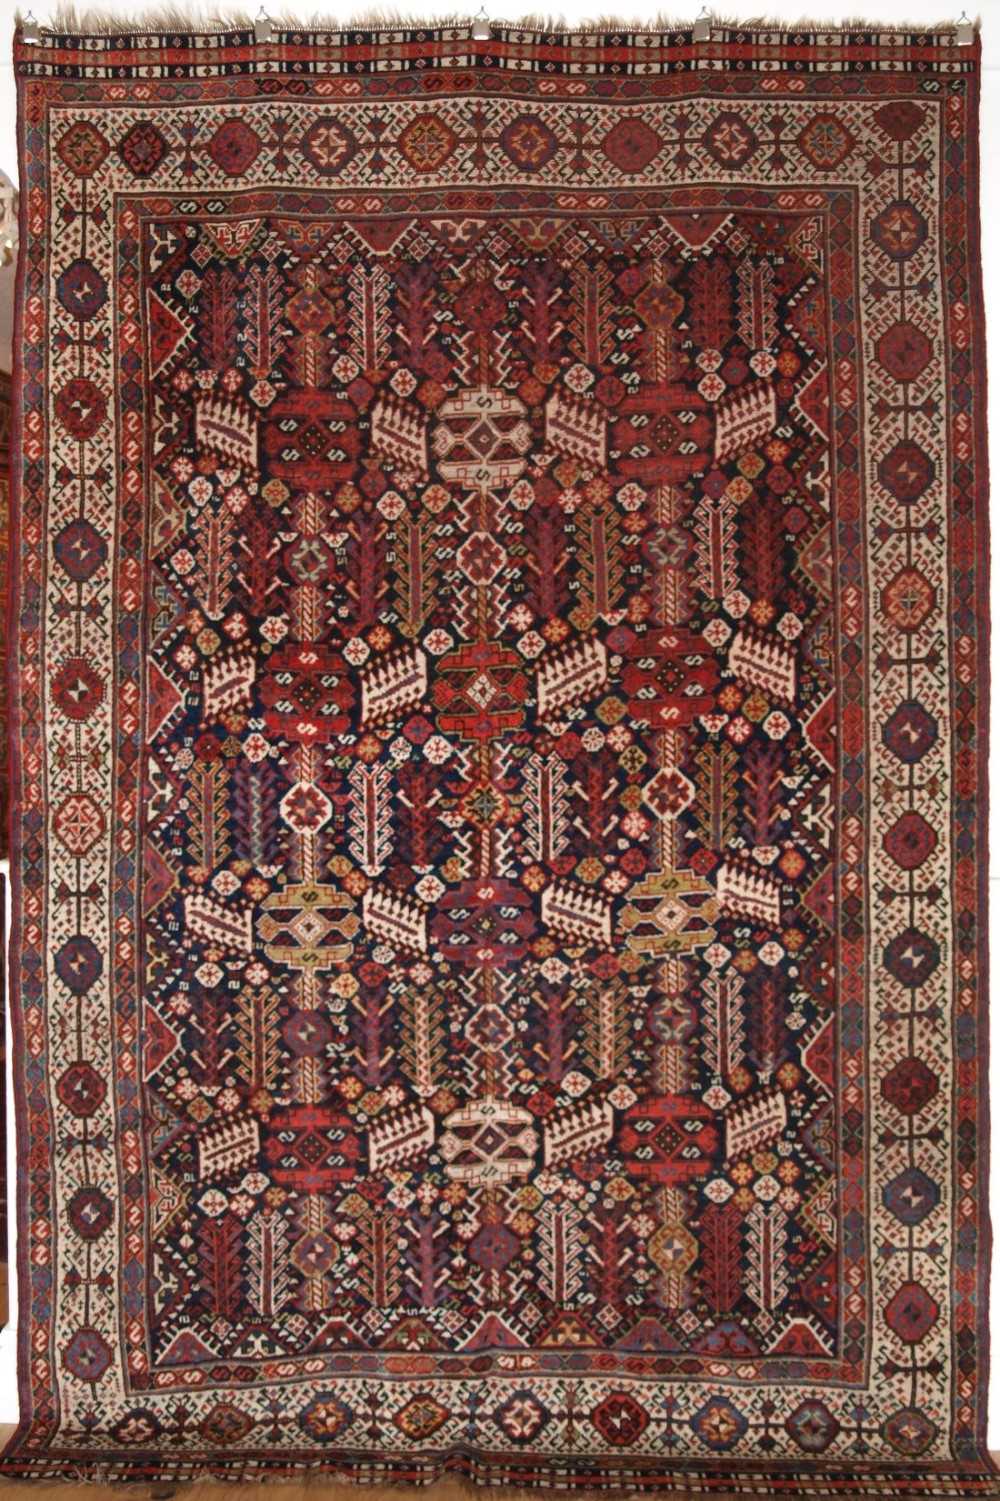 antique south west persian shekarlu qashqai rug classic design excellent condition circa 1900